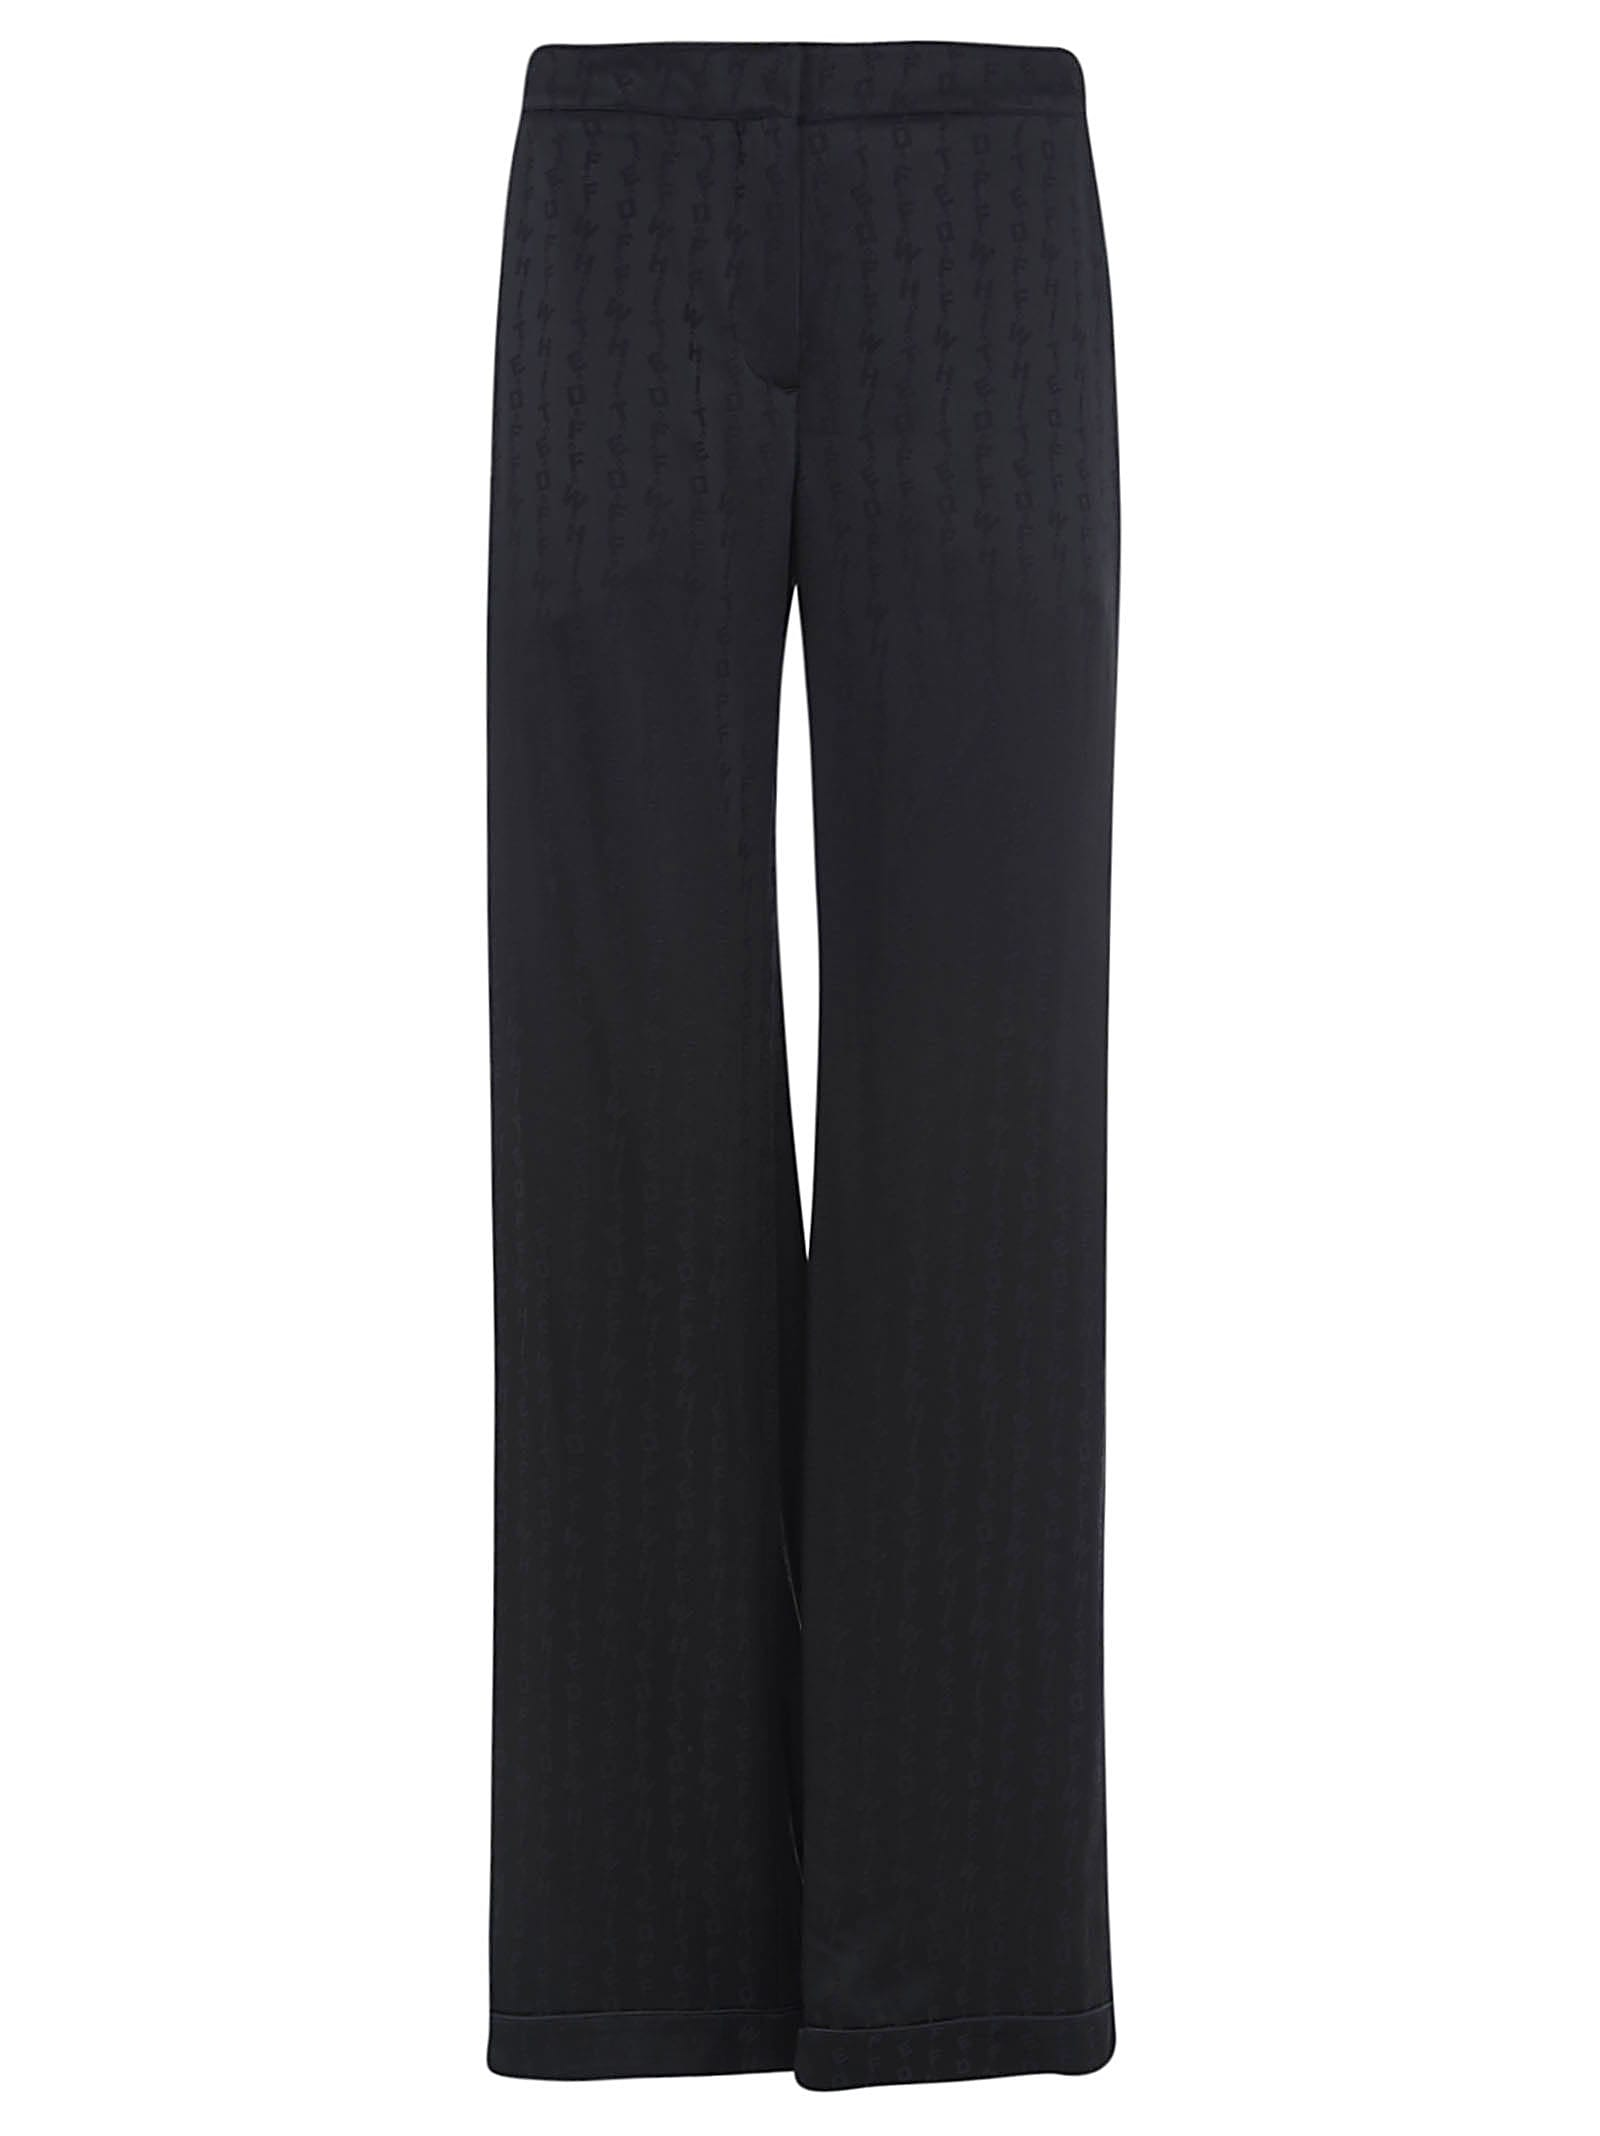 Off-White Long Alphabet Panel Trousers